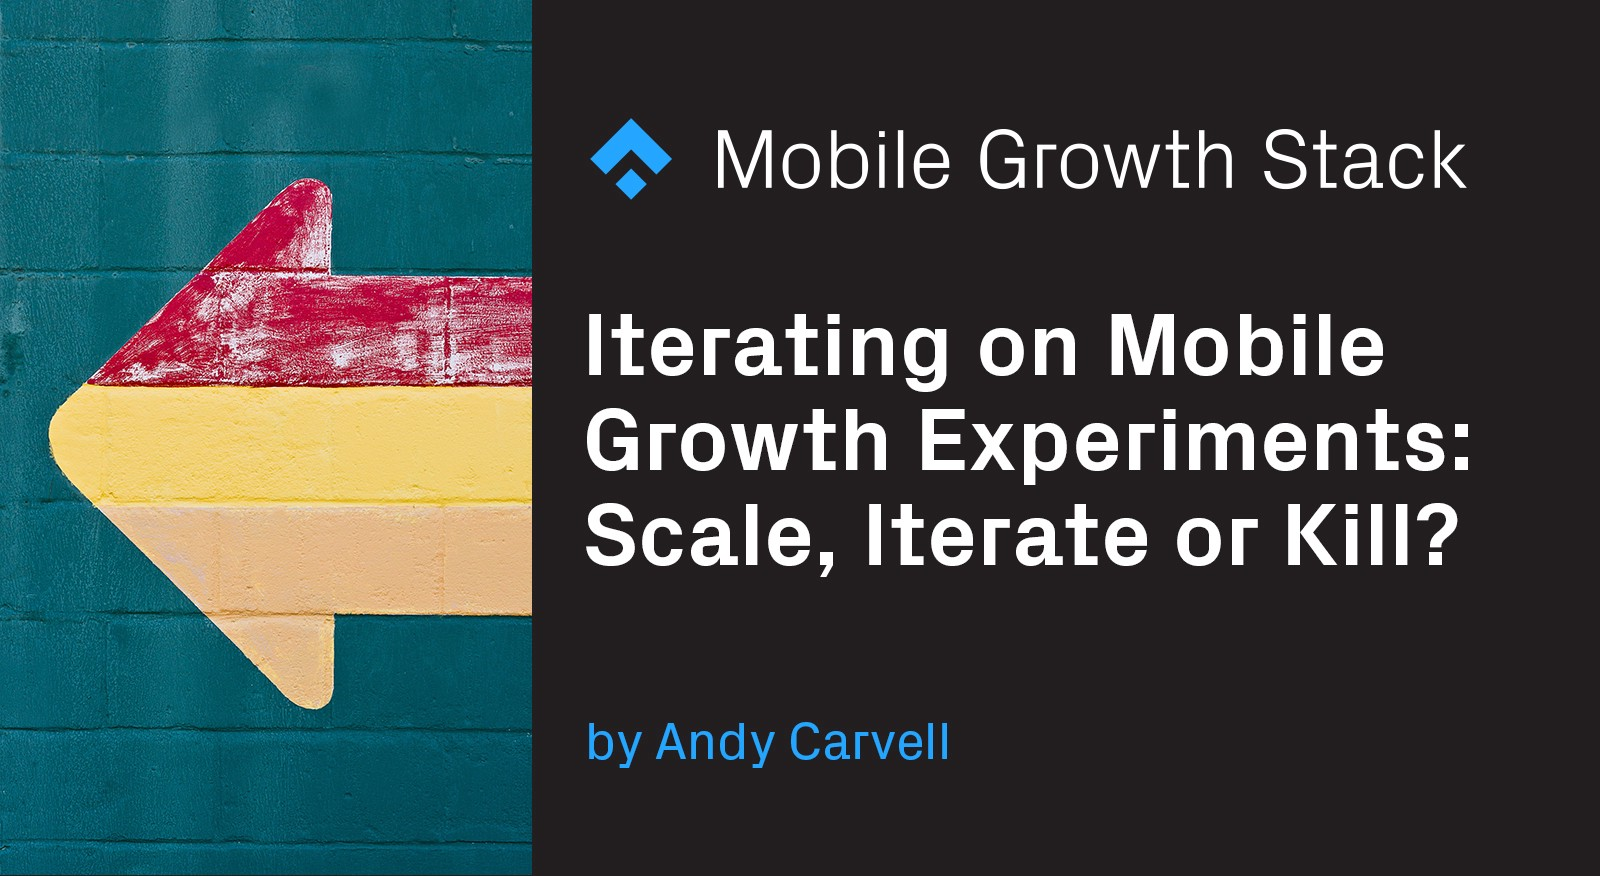 Iterating on Mobile Growth Experiments: Scale, Iterate or Kill?